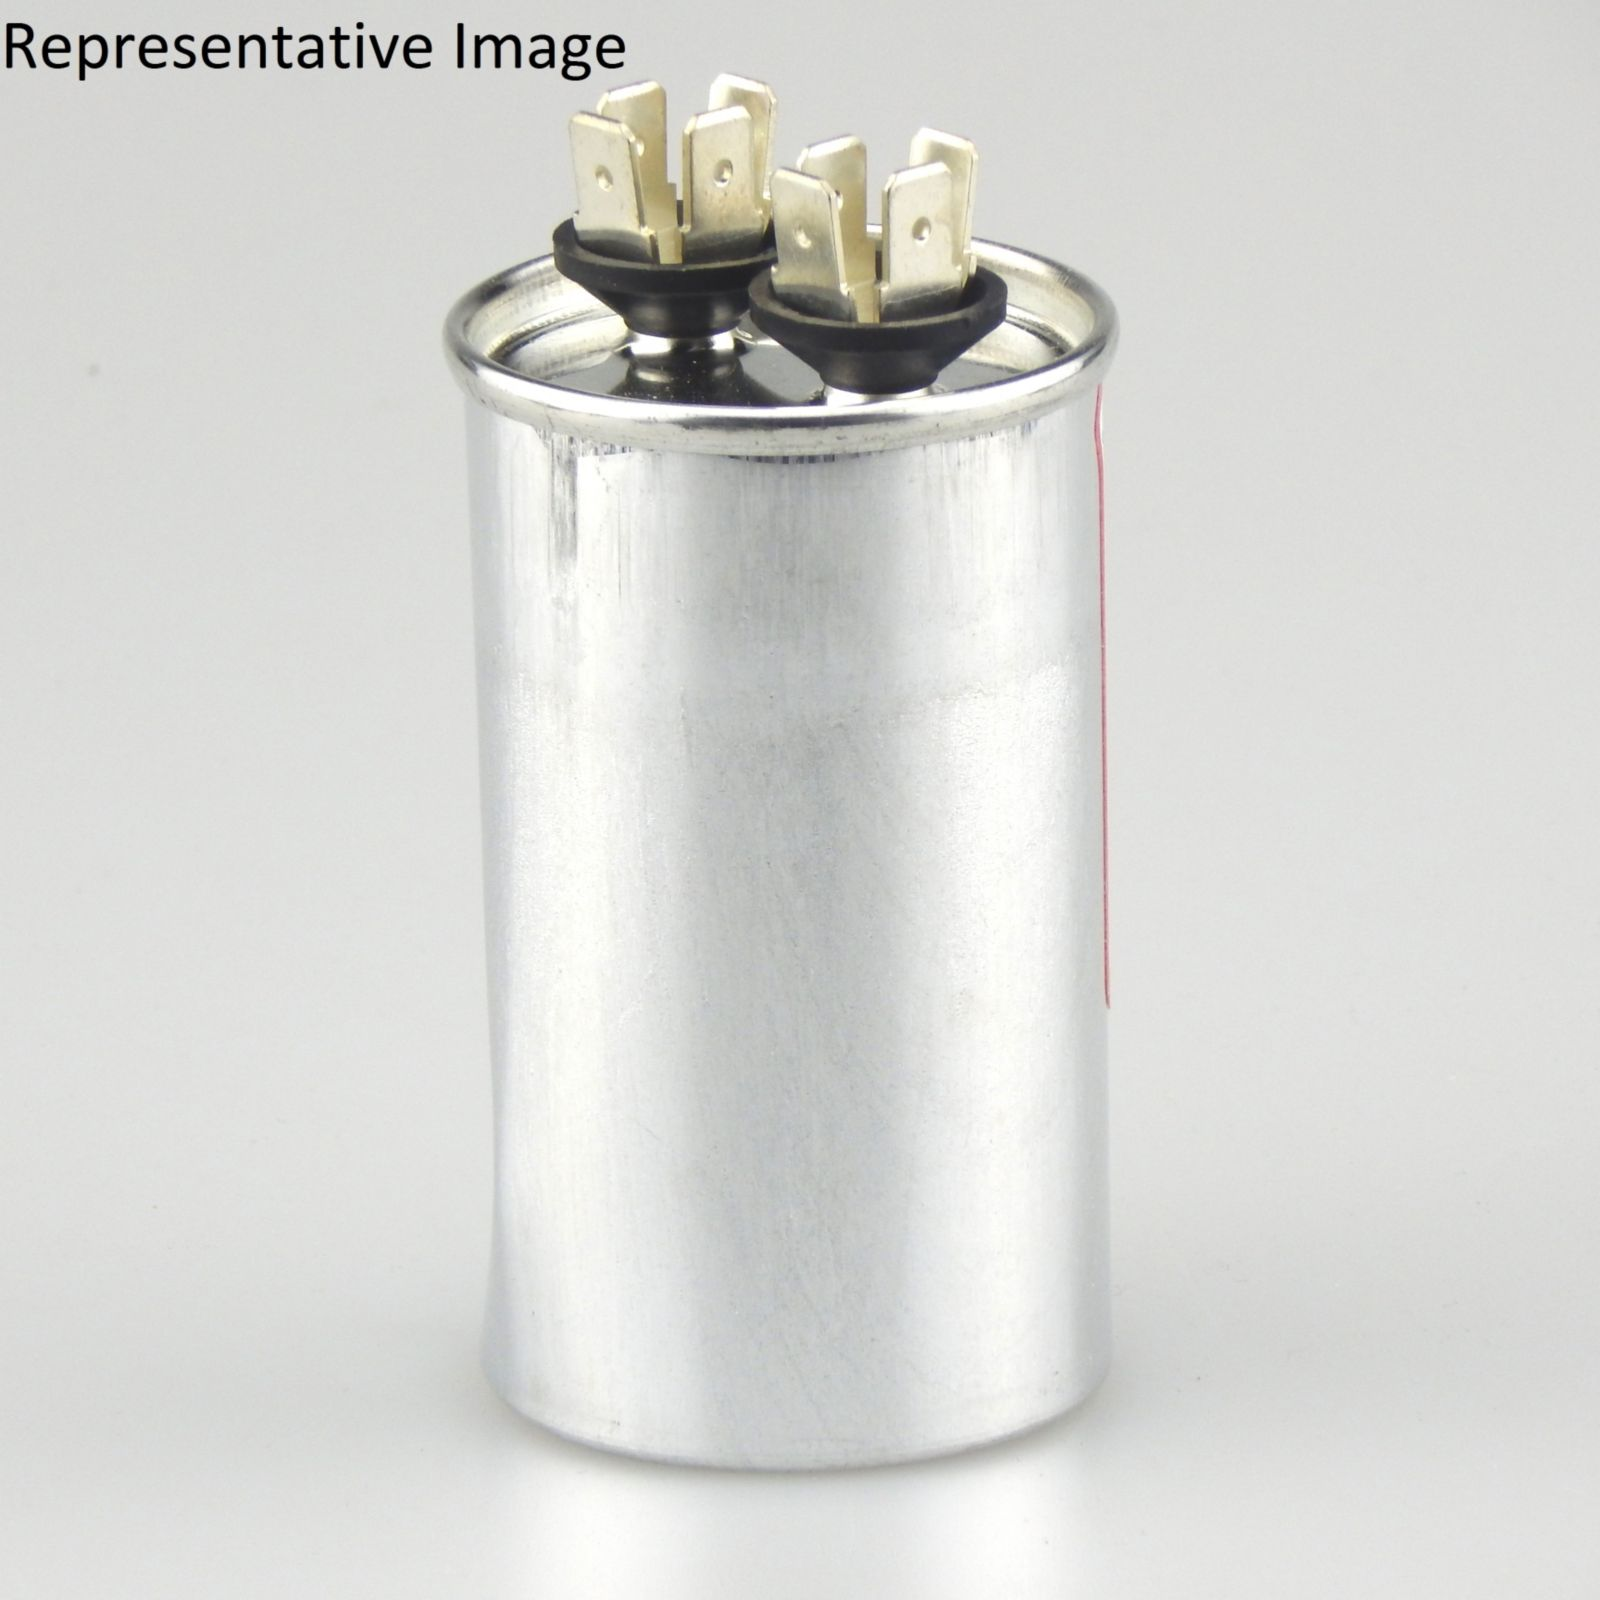 Amrad USA2204 - 5/370/440V Round Capacitor - USA Made